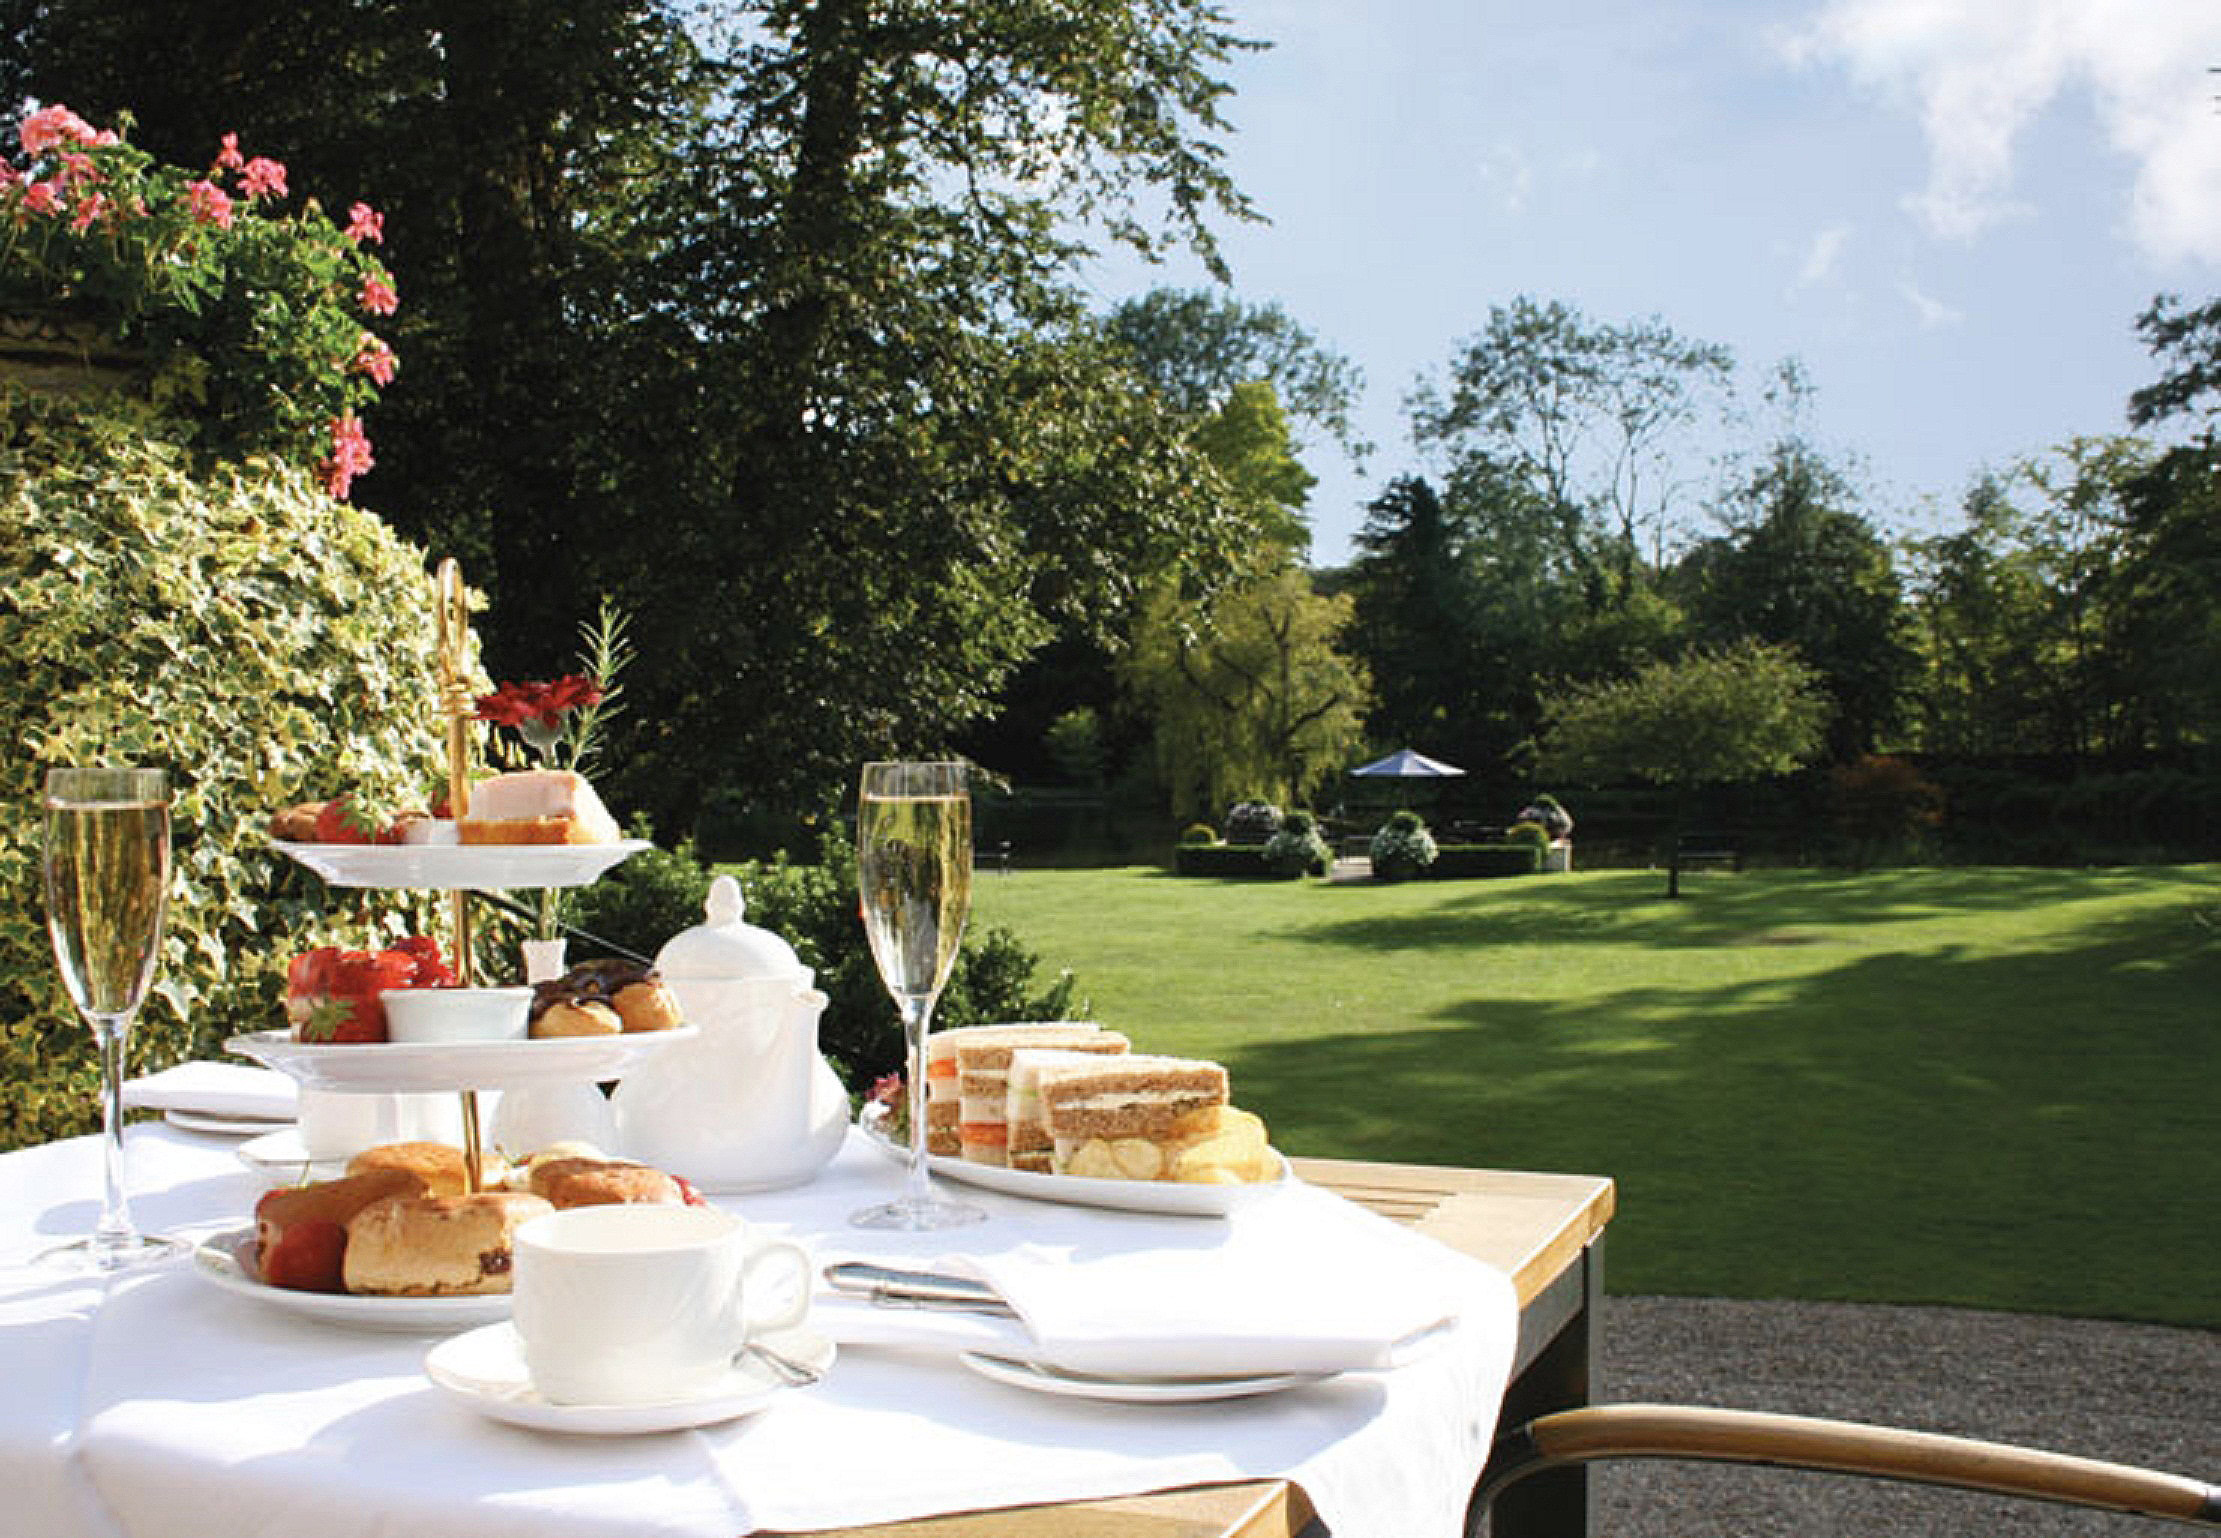 Country House Hotel Luxury At St Michael's Manor Hotel, St Albans 4